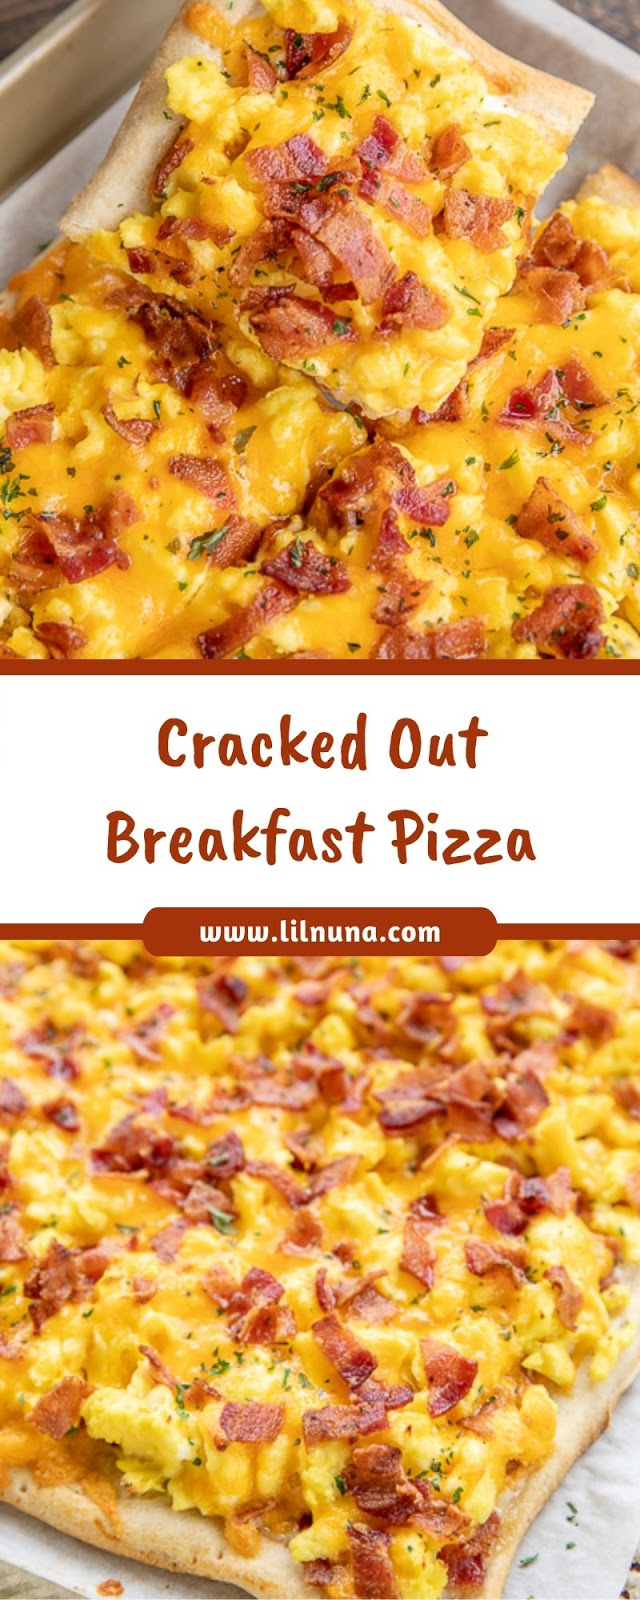 Cracked Out Breakfast Pizza